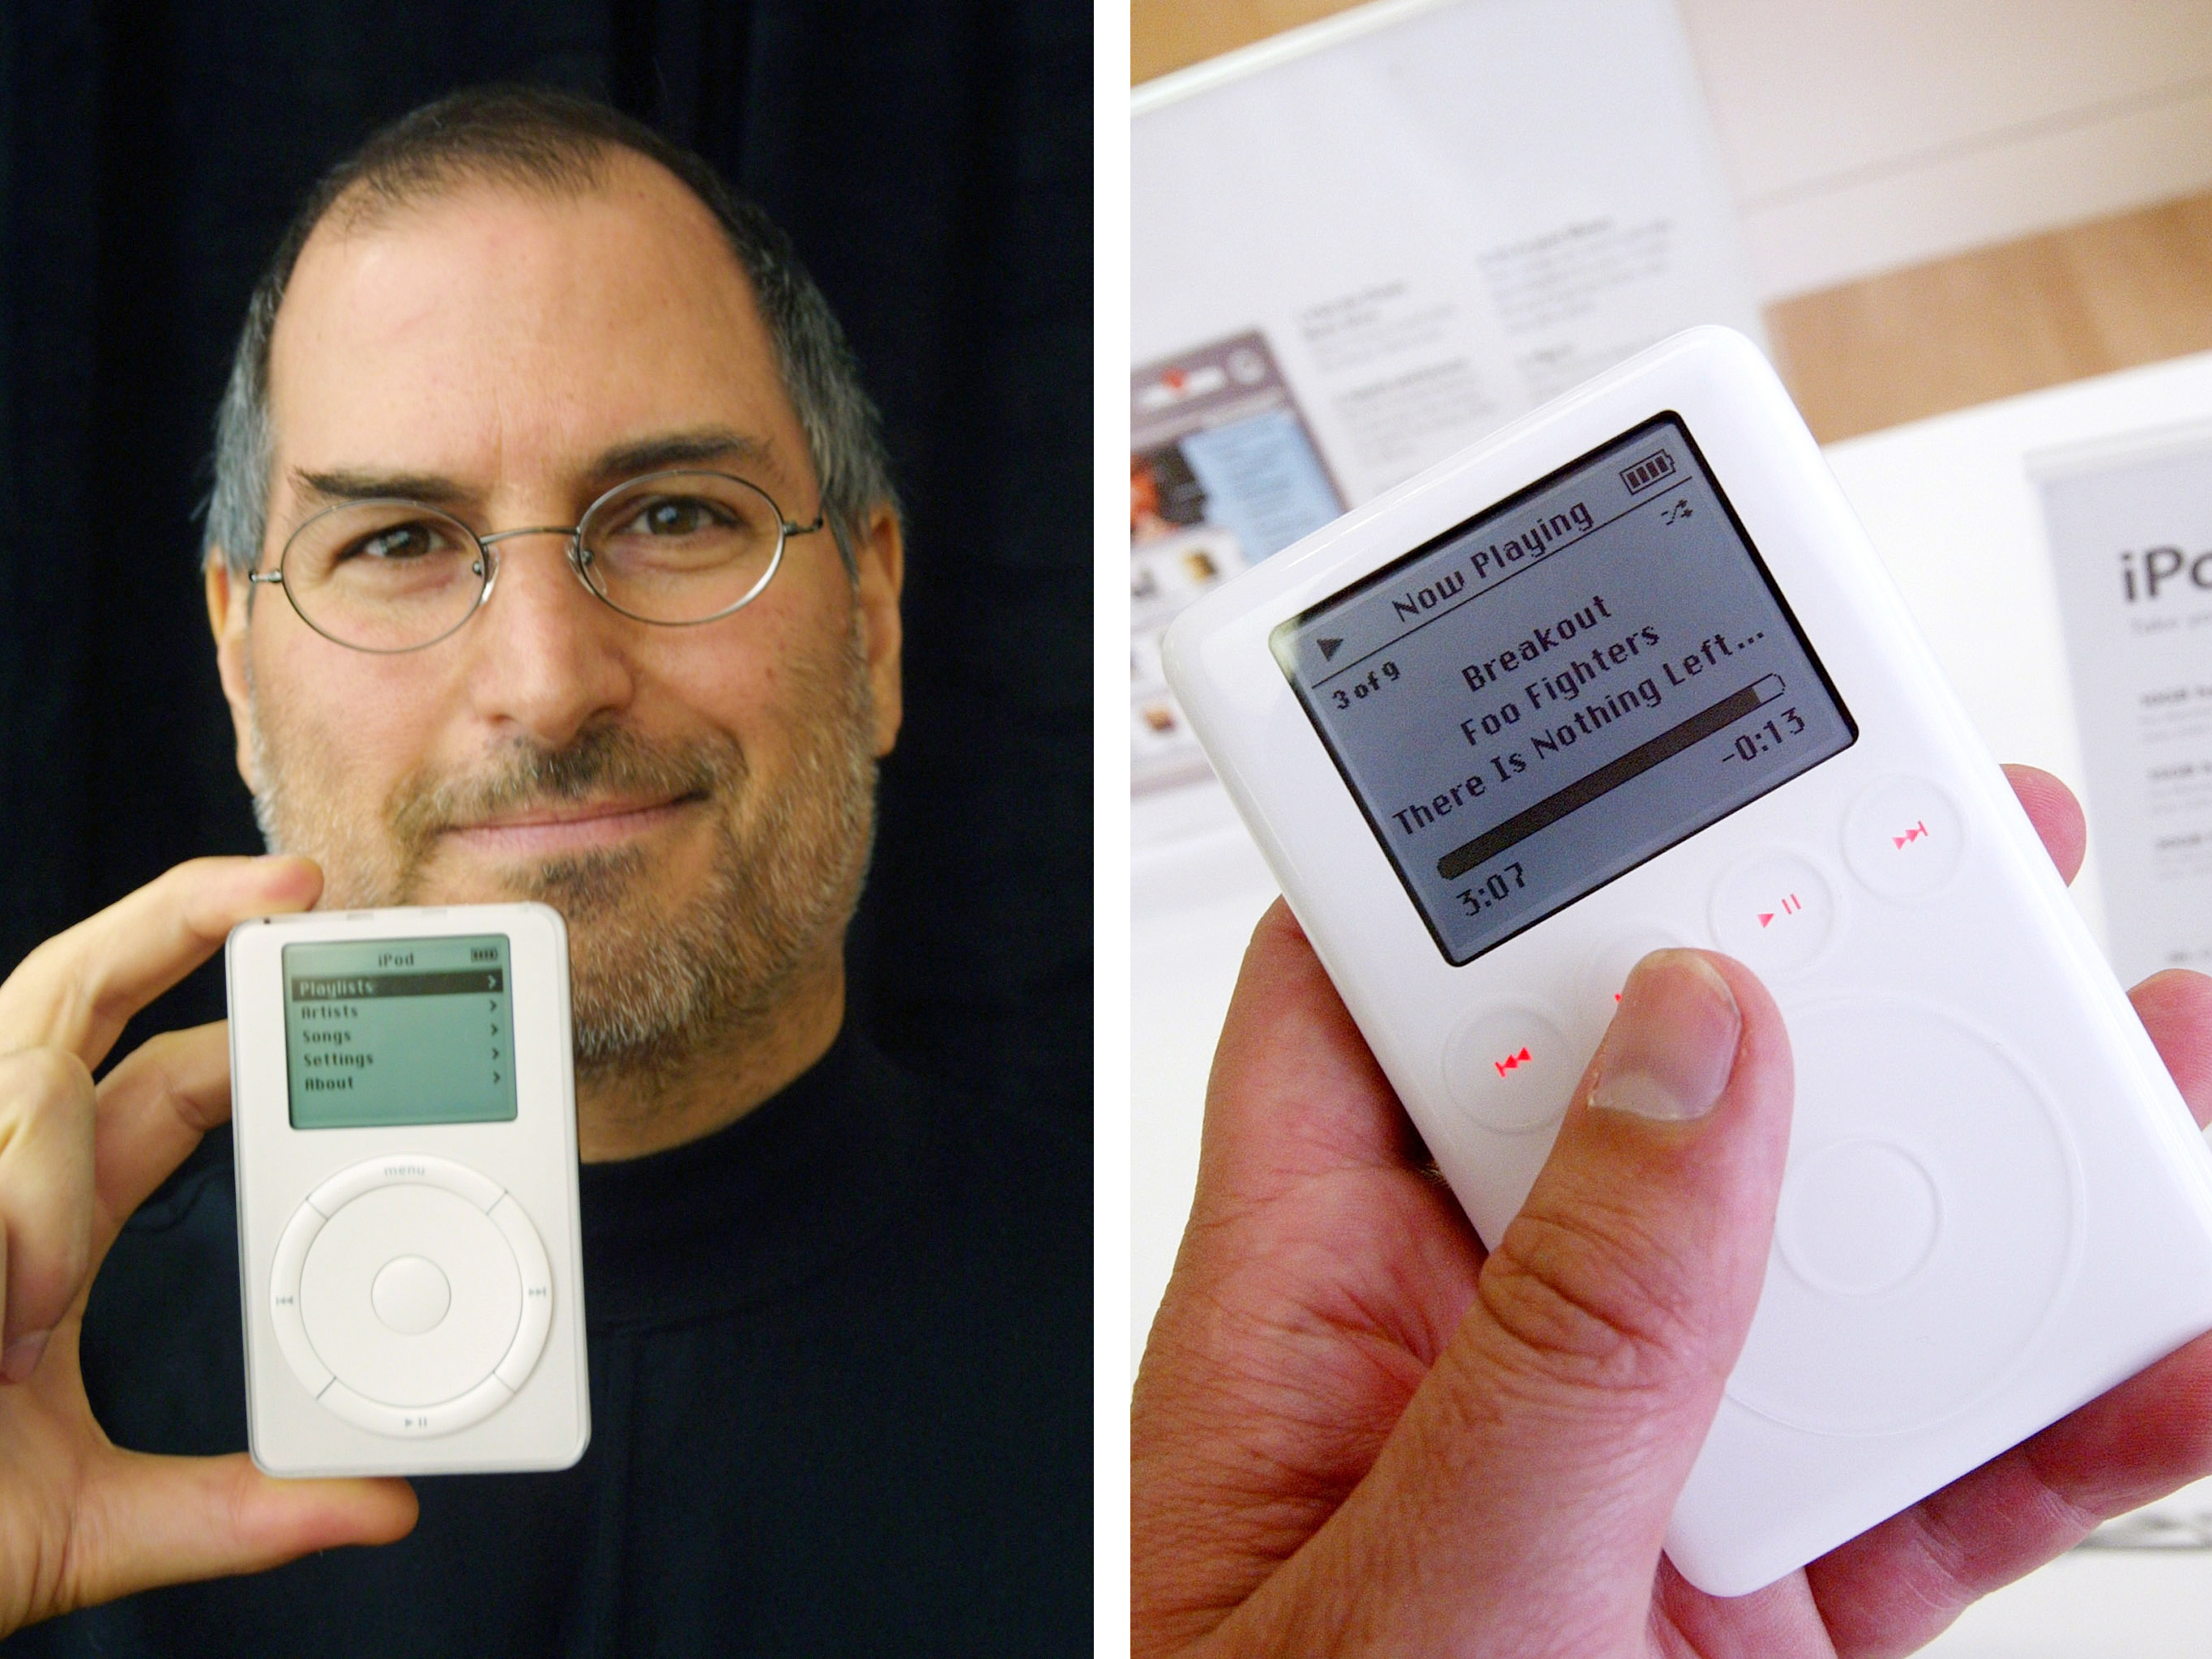 The original iPod (left) was released on November 10, 2001. The cheapest model held 5GB of music and cost $399. On May 2, 2003, Apple released a redesigned iPod (right) with entirely touch-sensitive interface. The new model held 10GB of music and cost $299.